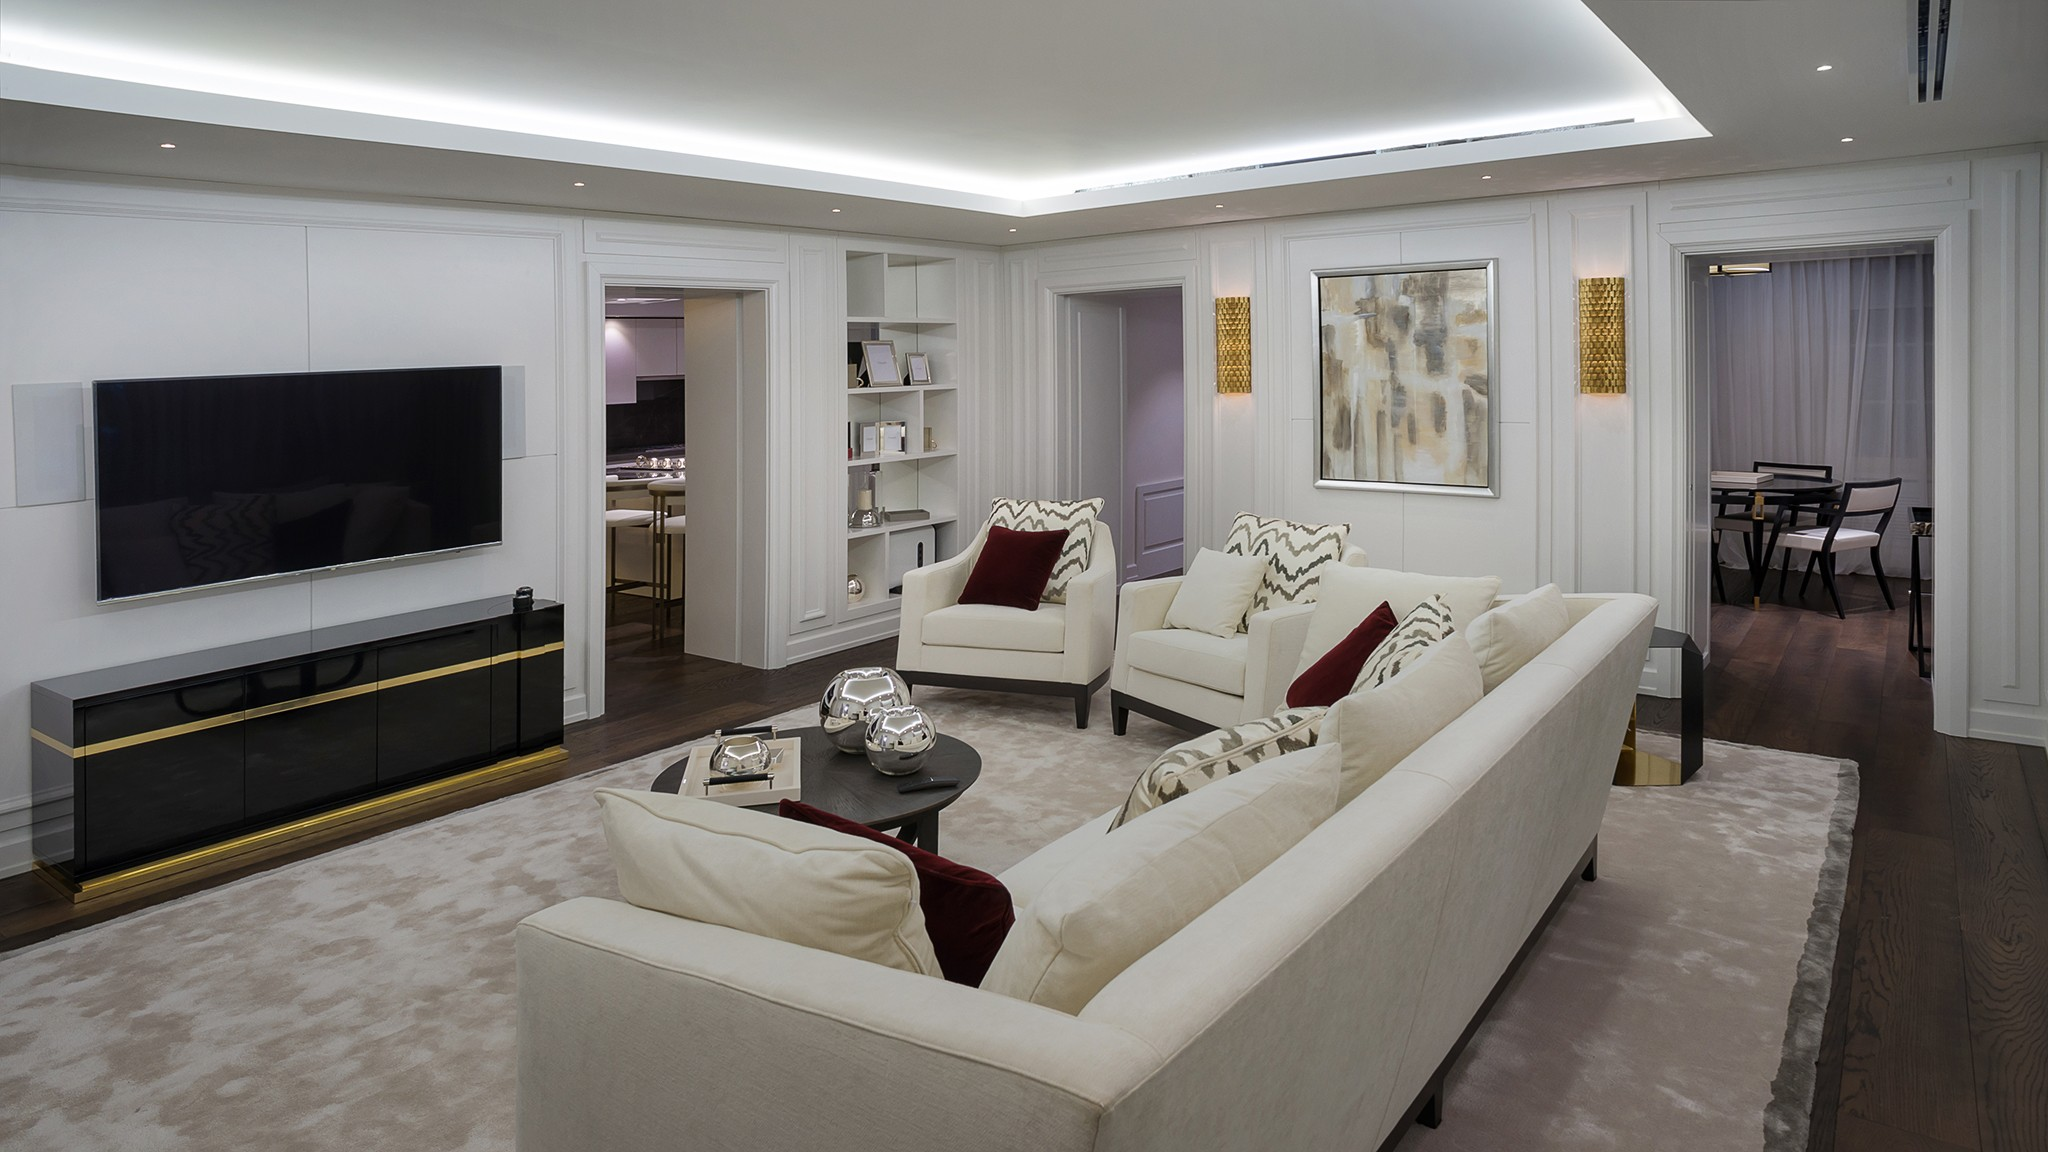 Living-room-at-the-villa-interior-photographer-Moscow